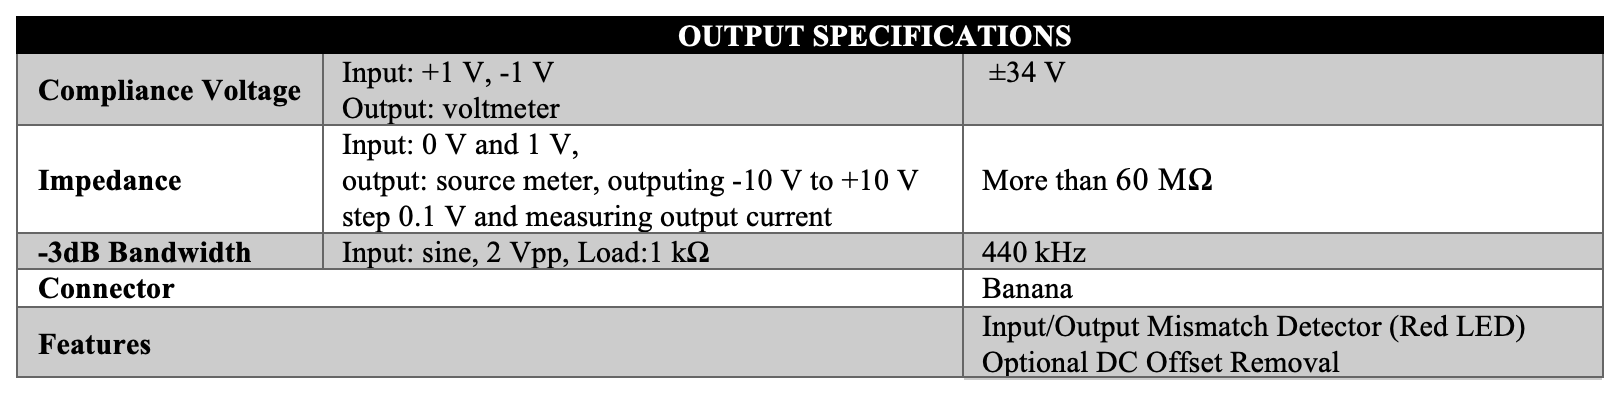 Caputron High Precision Linear Current Isolator Output Specifications